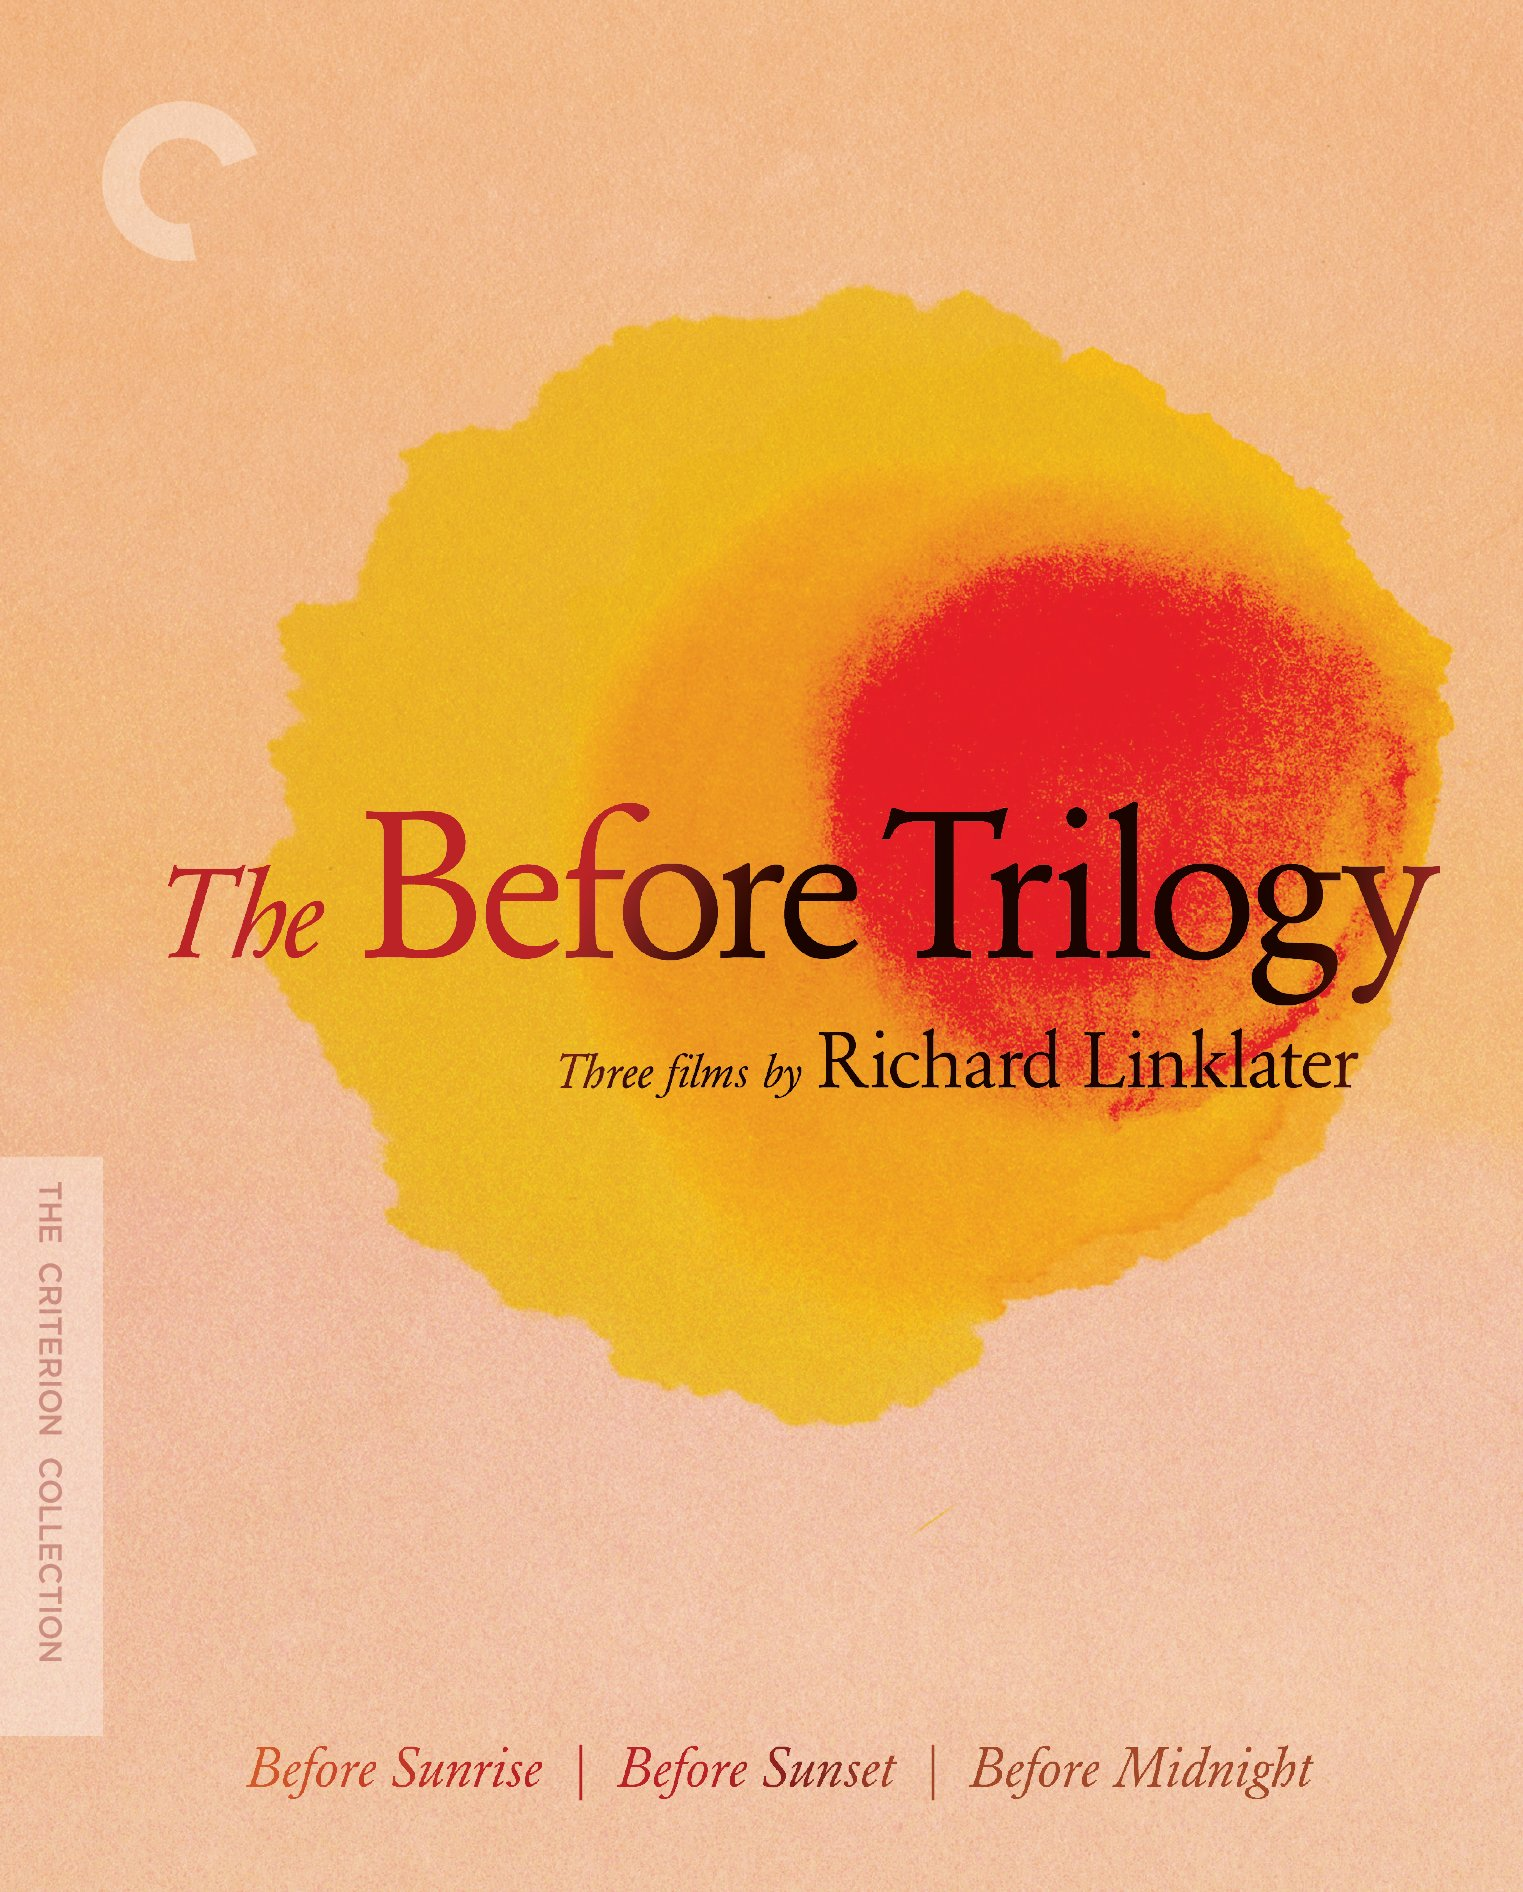 The Before Trilogy (Before Sunrise/Before Sunset/Before Midnight) (the Criterion Collection) [Blu-ray]